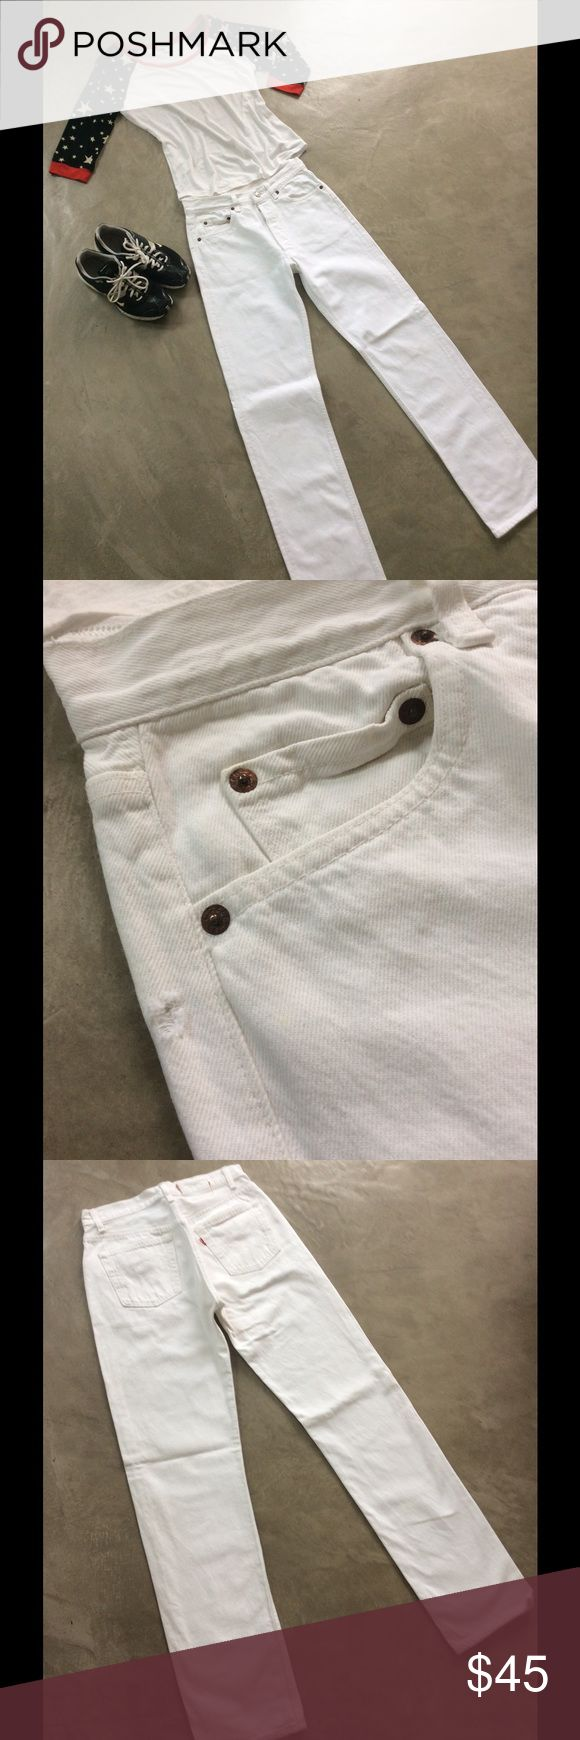 """Vintage rare white Levi 501 jeans PRICE FIRM Very hard to find in this condition. From the 80's-90's-90's these are 501 button fly classic cut jeans. I tiny hole as shown but all else in very good condition. Waist measures 28"""" and length is 33"""". A true wardrobe classic. Vintage Levis Jeans Straight Leg"""